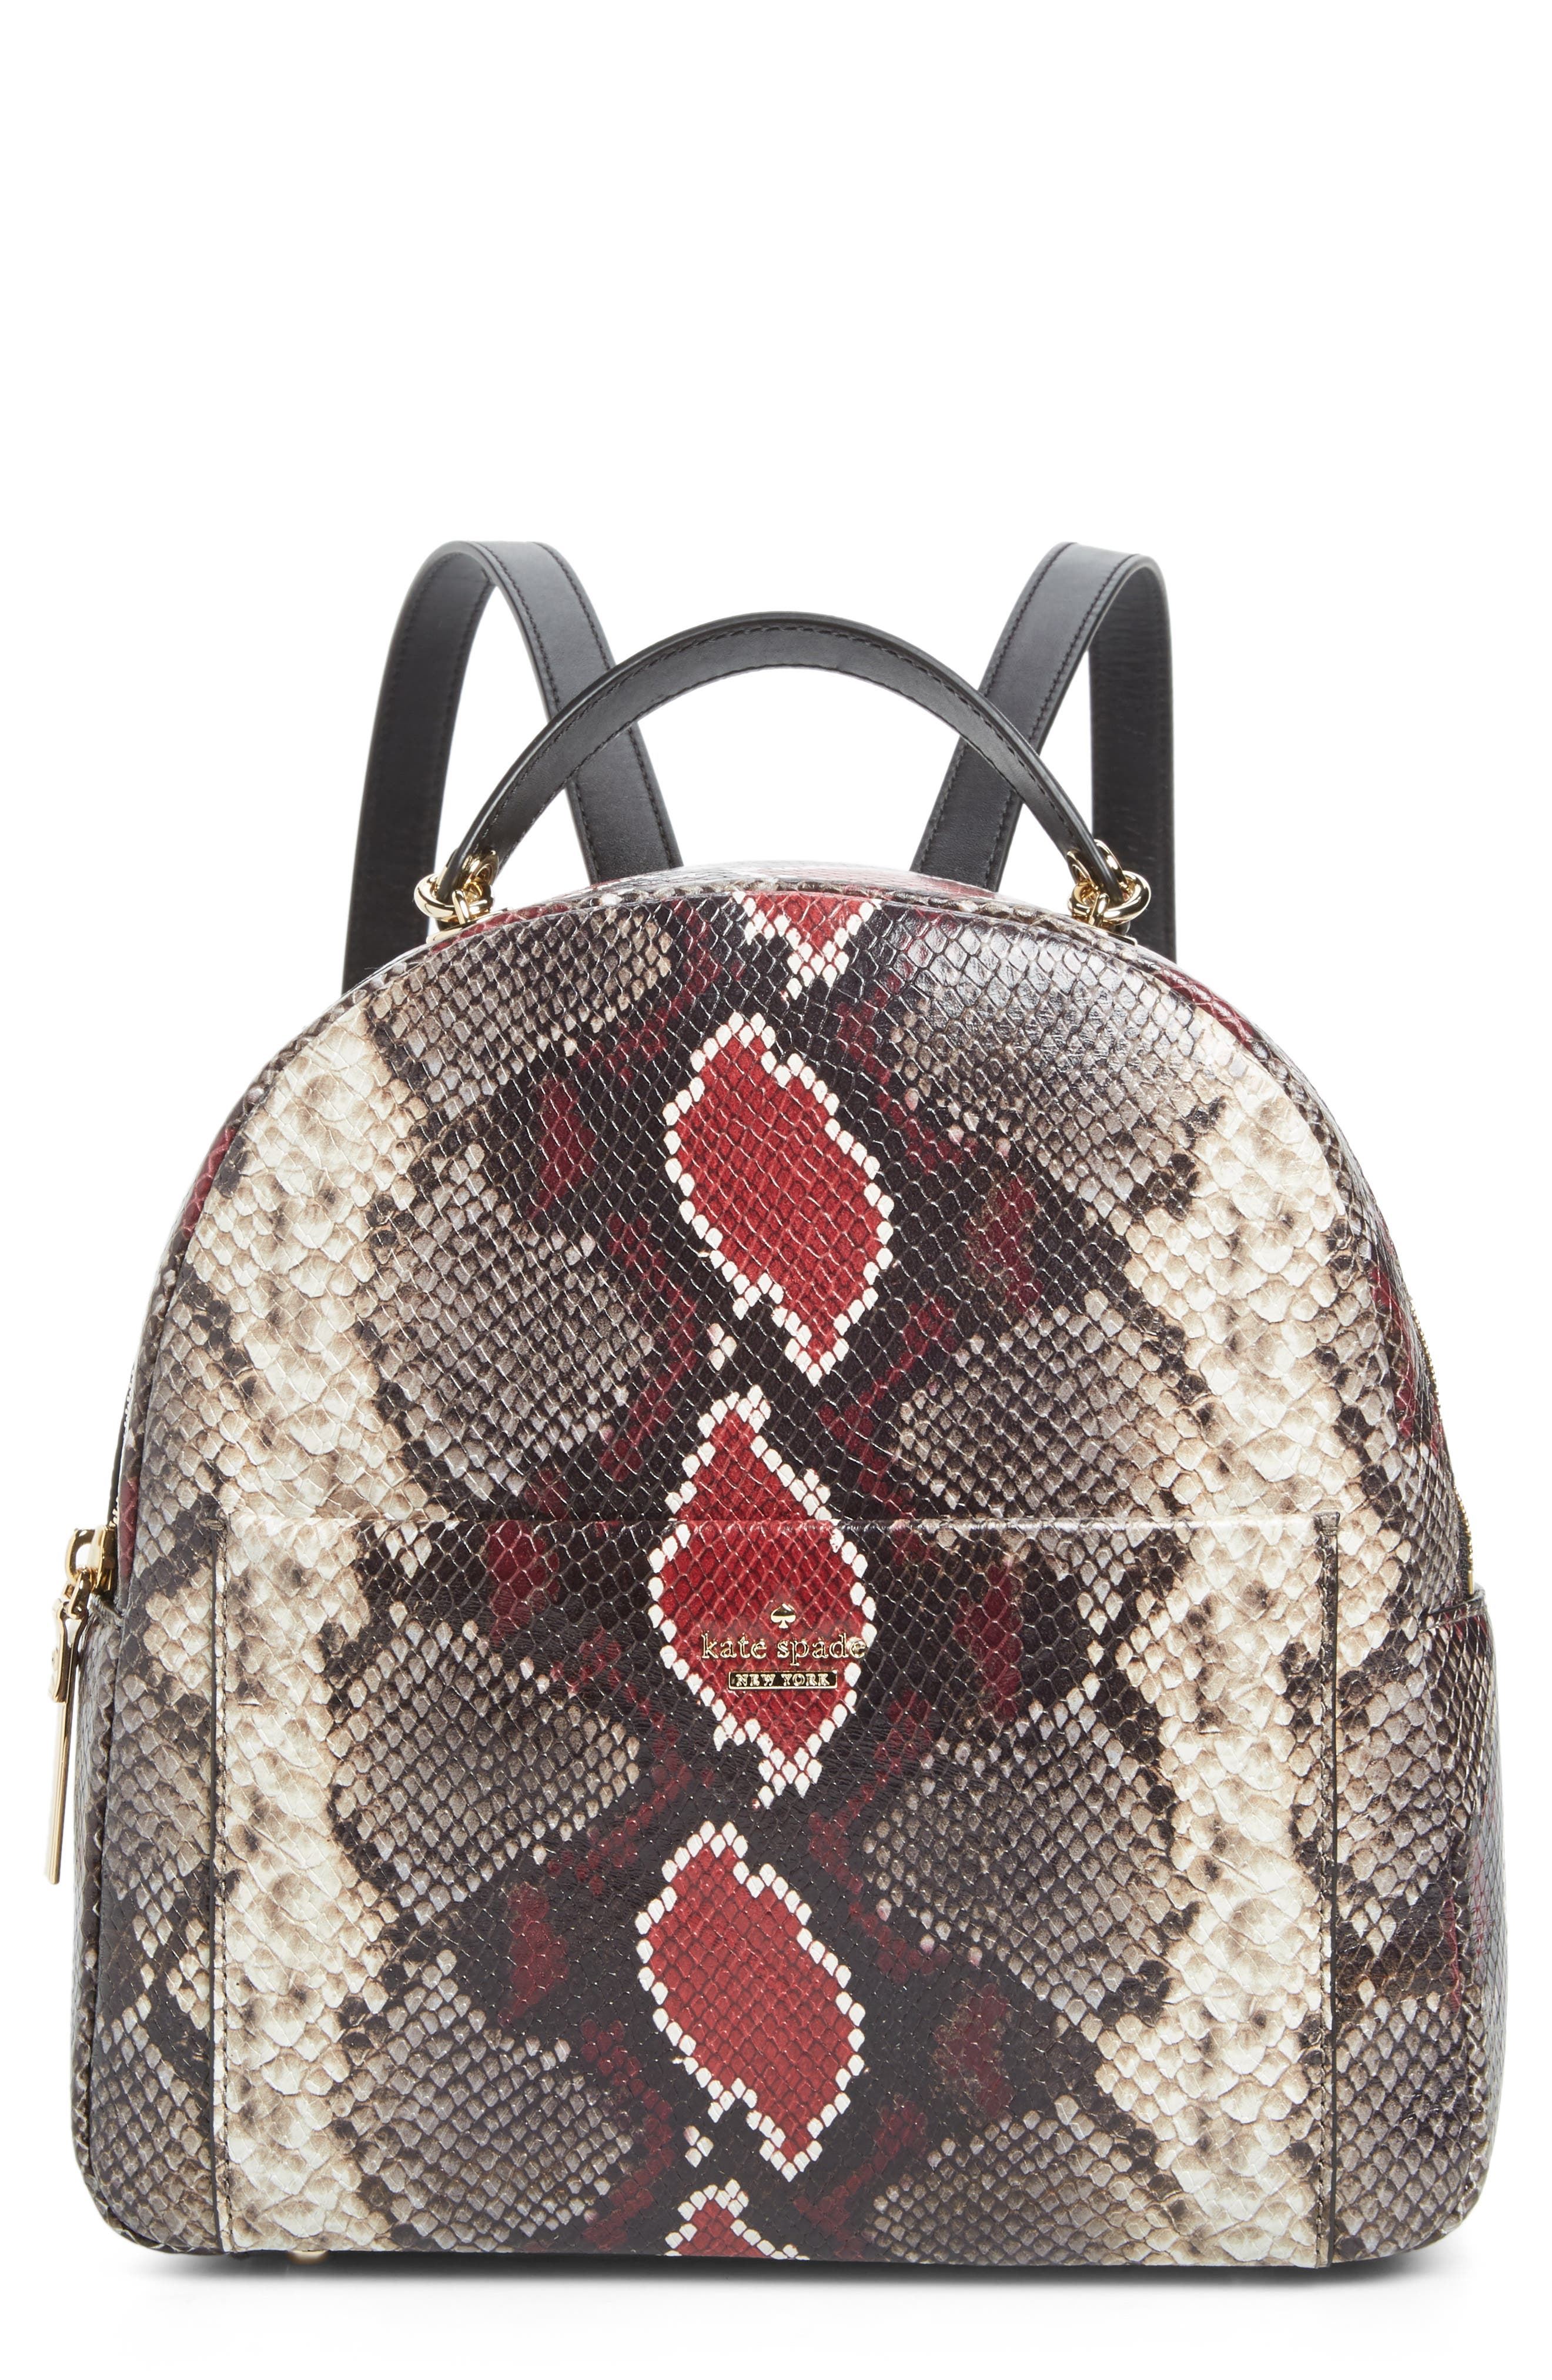 reese park - ethel snake embossed leather backpack, Main, color, 200